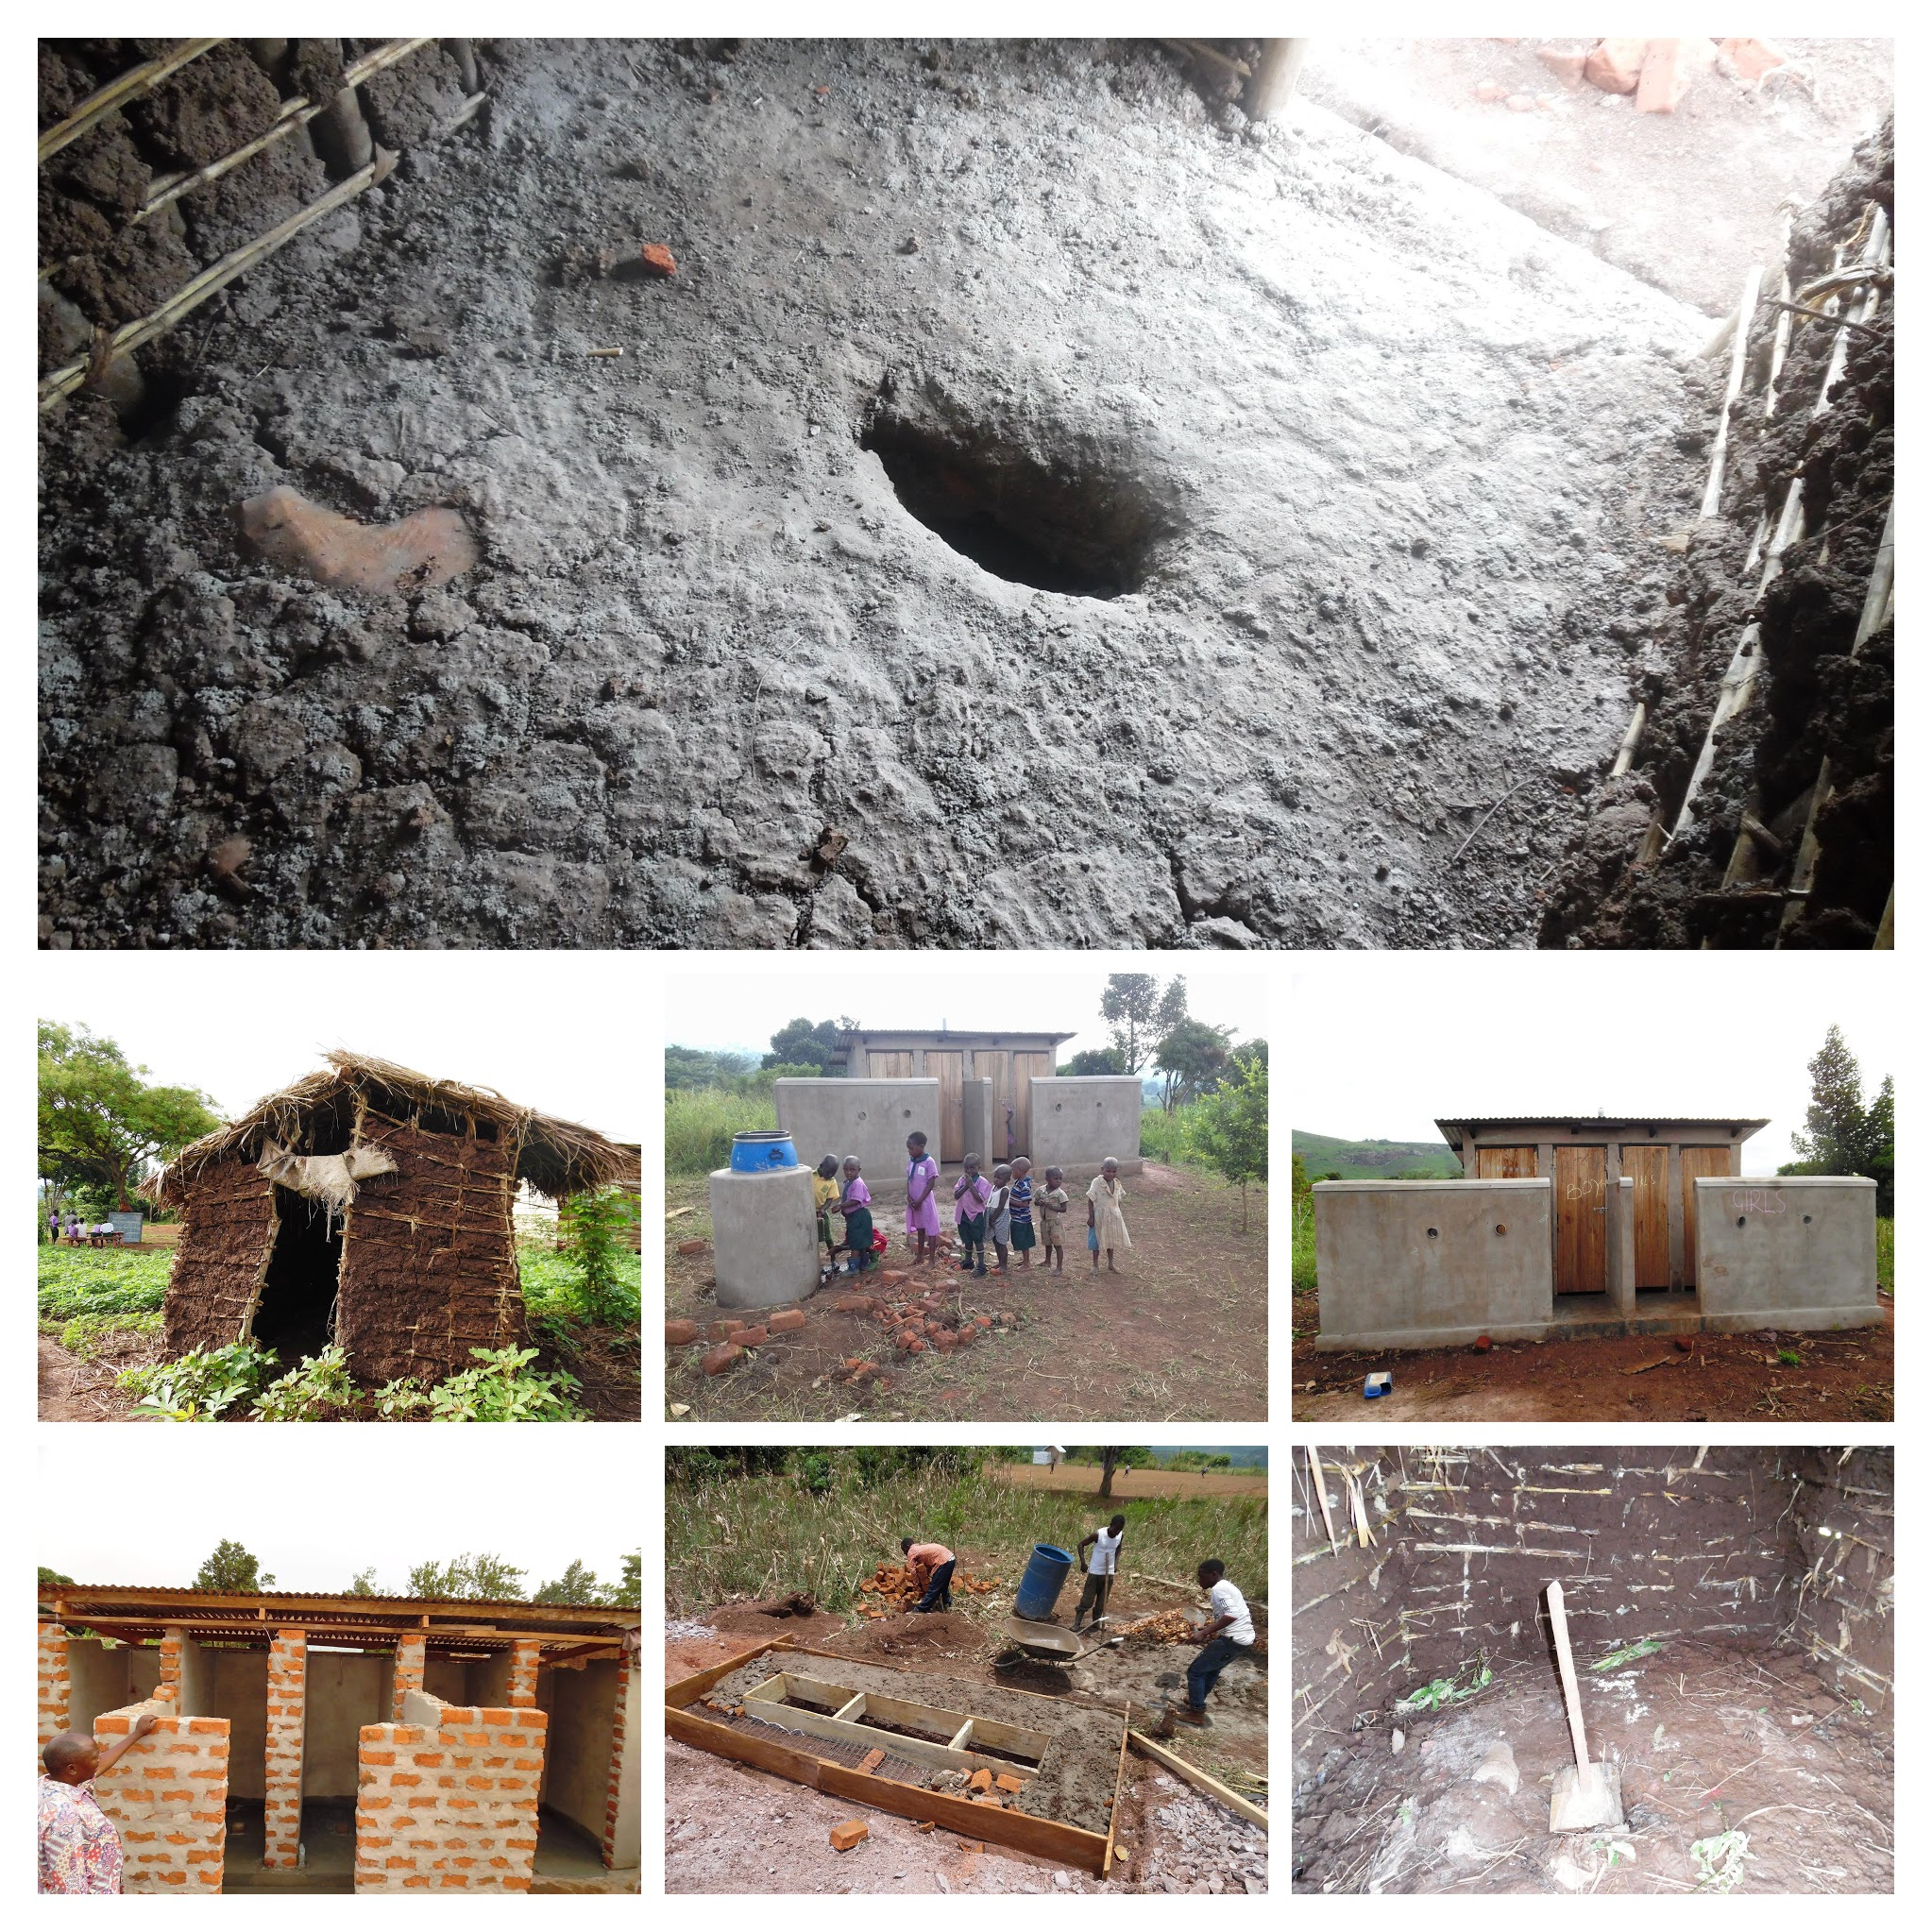 New Toilet Facility for the School